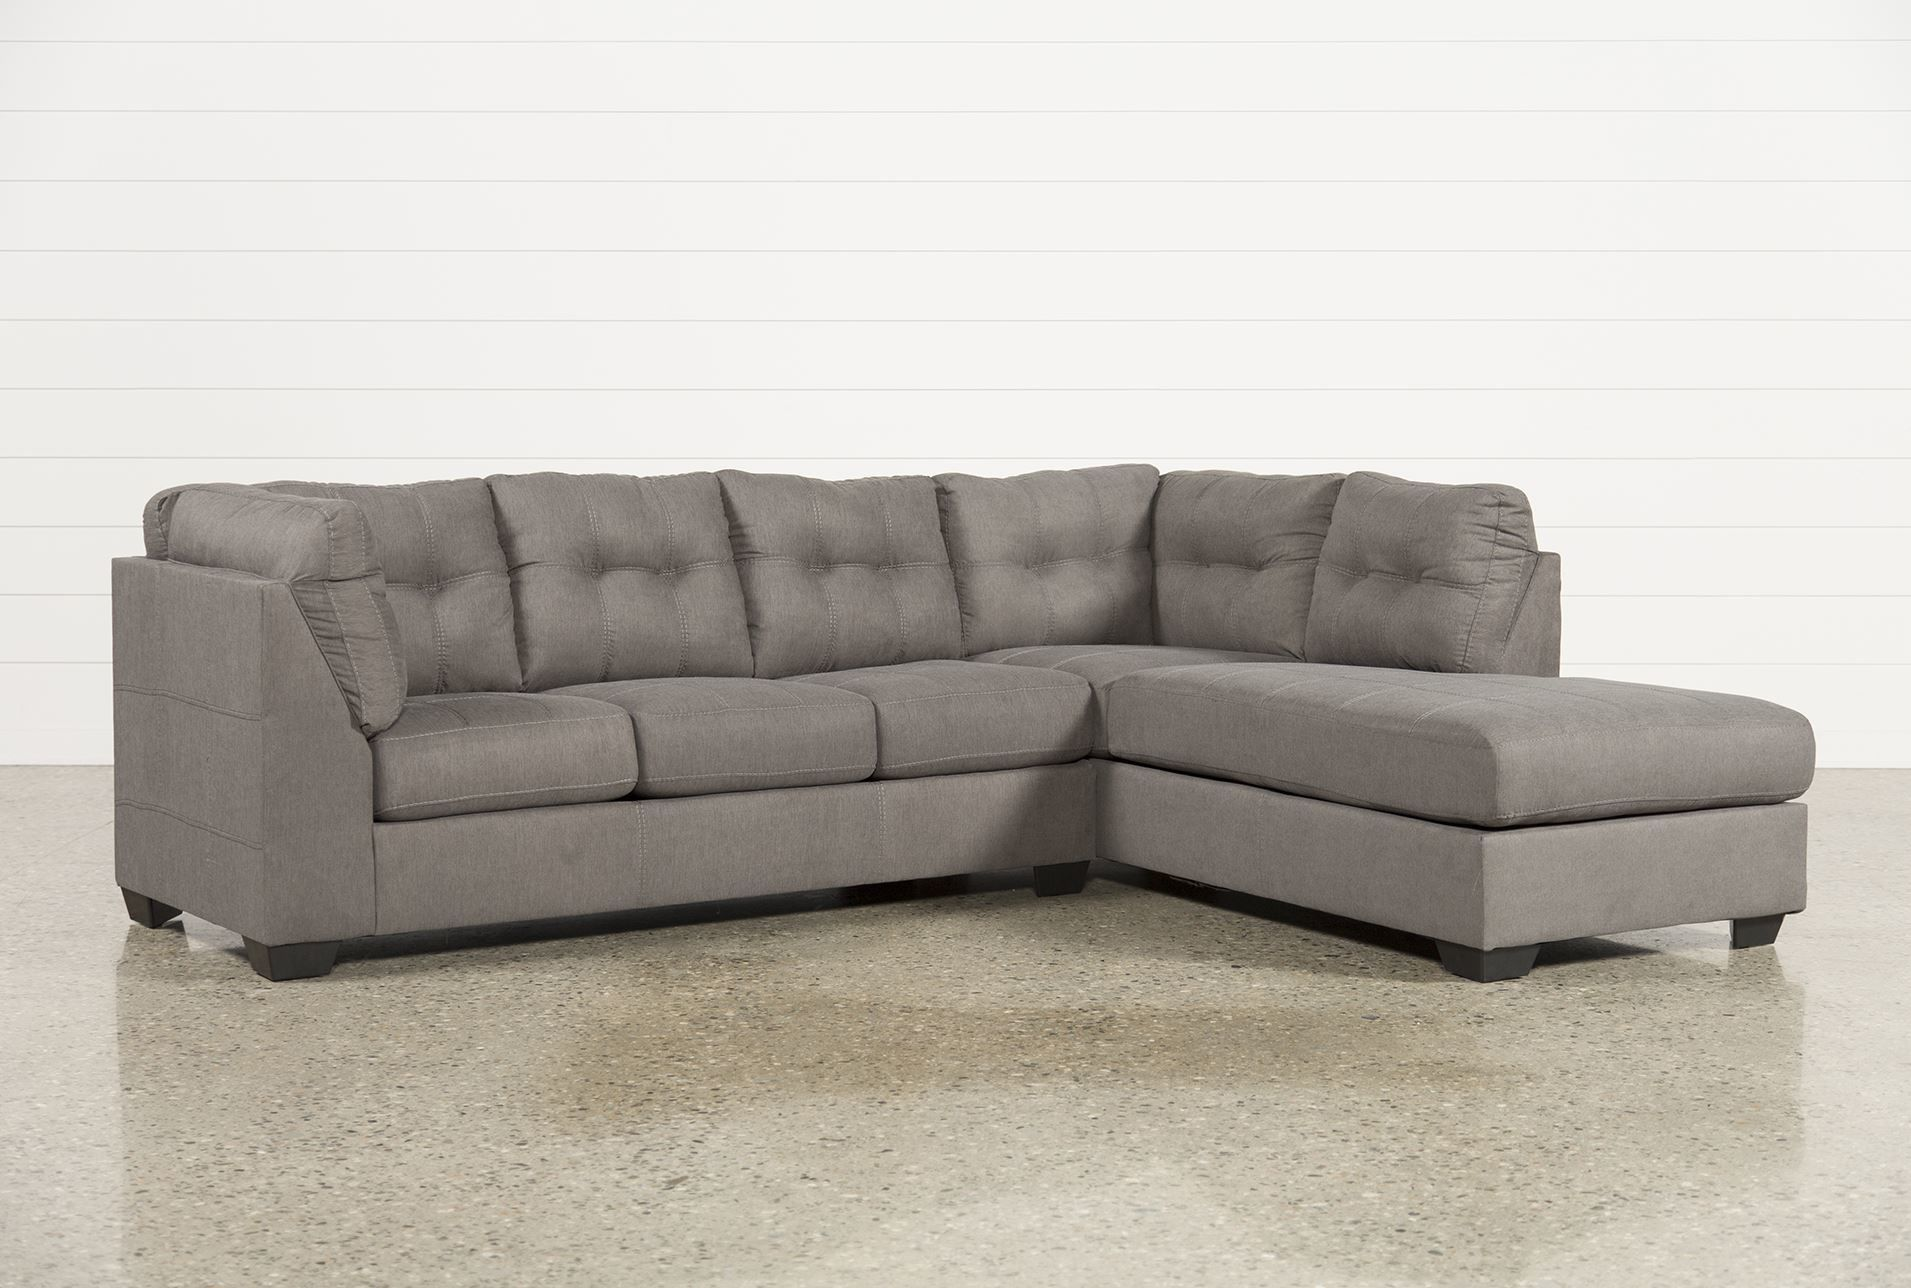 finest sofa mart sectional online-Awesome sofa Mart Sectional Photo